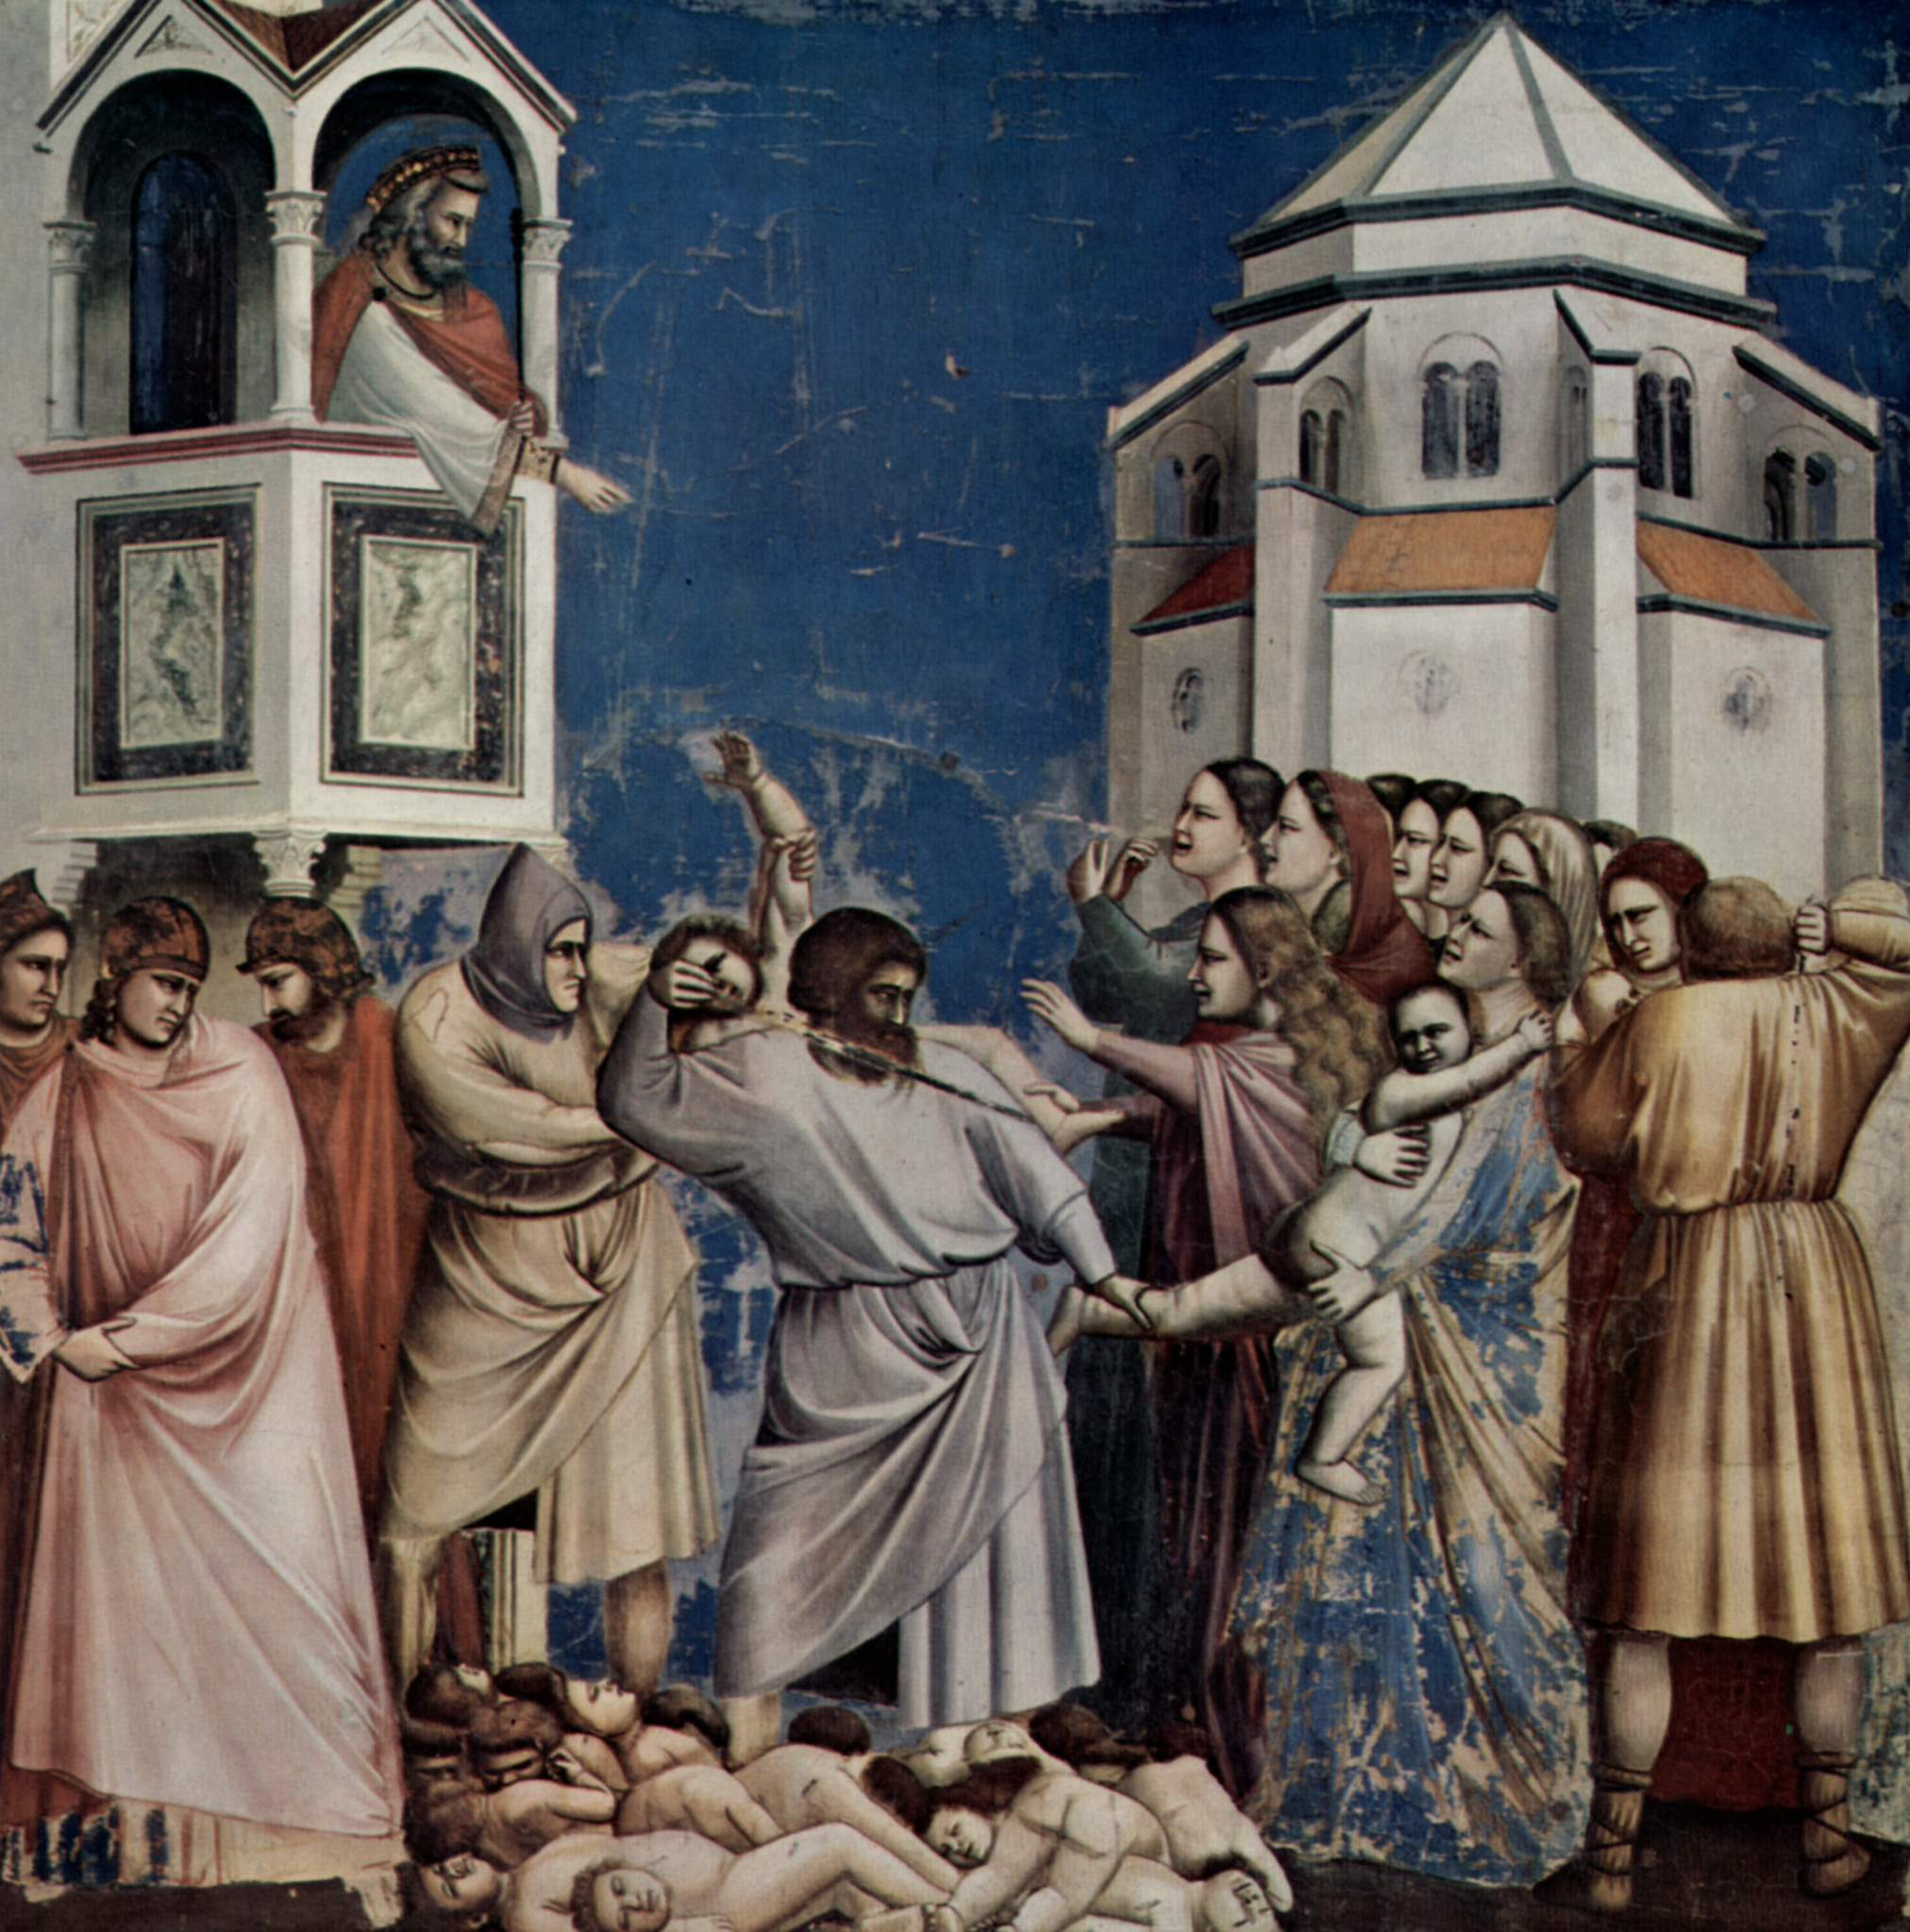 The Massacre of the Innocents, fresco by Giotto di Bondone between 1304 and 1306 No. 21 Scenes from the Life of Christ: 5. Massacre of the Innocents. At tThe Scrovegni Chapel (Cappella degli Scrovegni, also known as the Arena Chapel), a small church adjacent to the Augustinian monastery, the Monastero degli Eremitani in Padua, region of Veneto, Italy. The chapel and monastery are now part of the complex of the Museo Civico of Padua. The chapel contains a fresco cycle by Giotto, completed about 1305 and considered to be an important masterpiece of Western art.